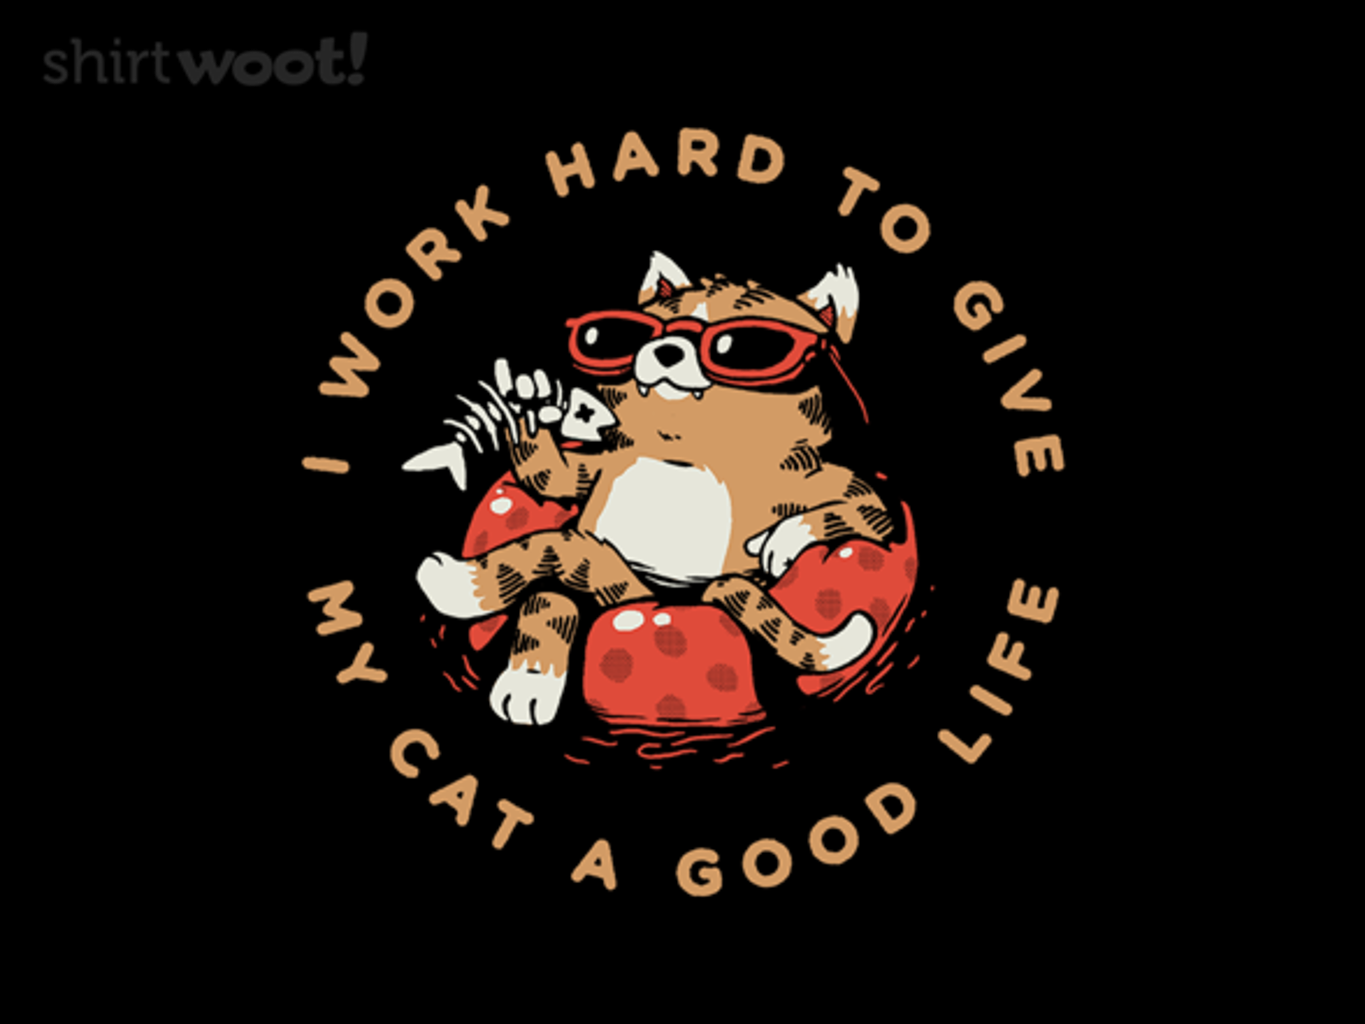 Woot!: I Work Hard to Give My Cat a Good Life - $15.00 + Free shipping